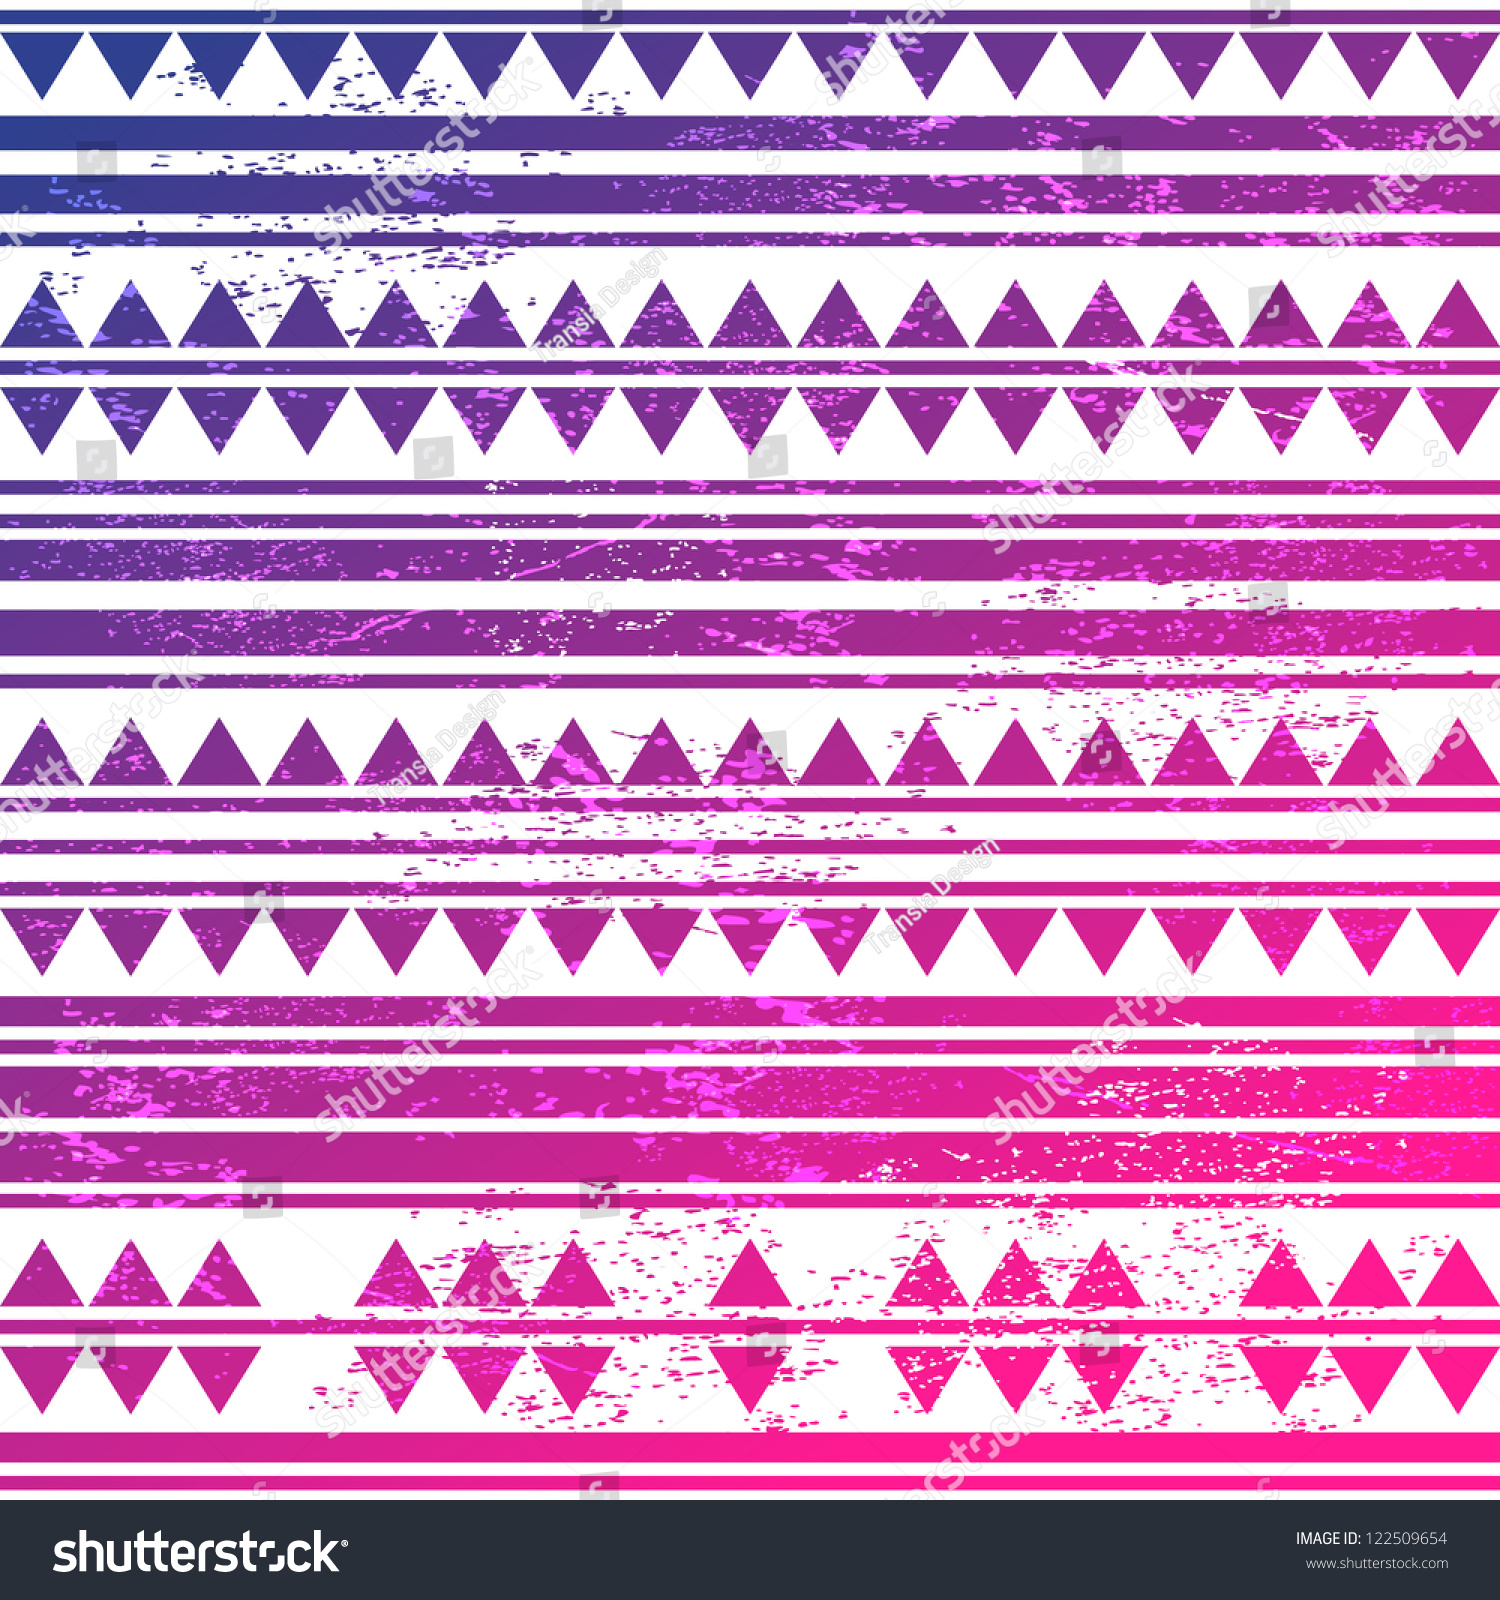 Black And White Tribal Print Background images